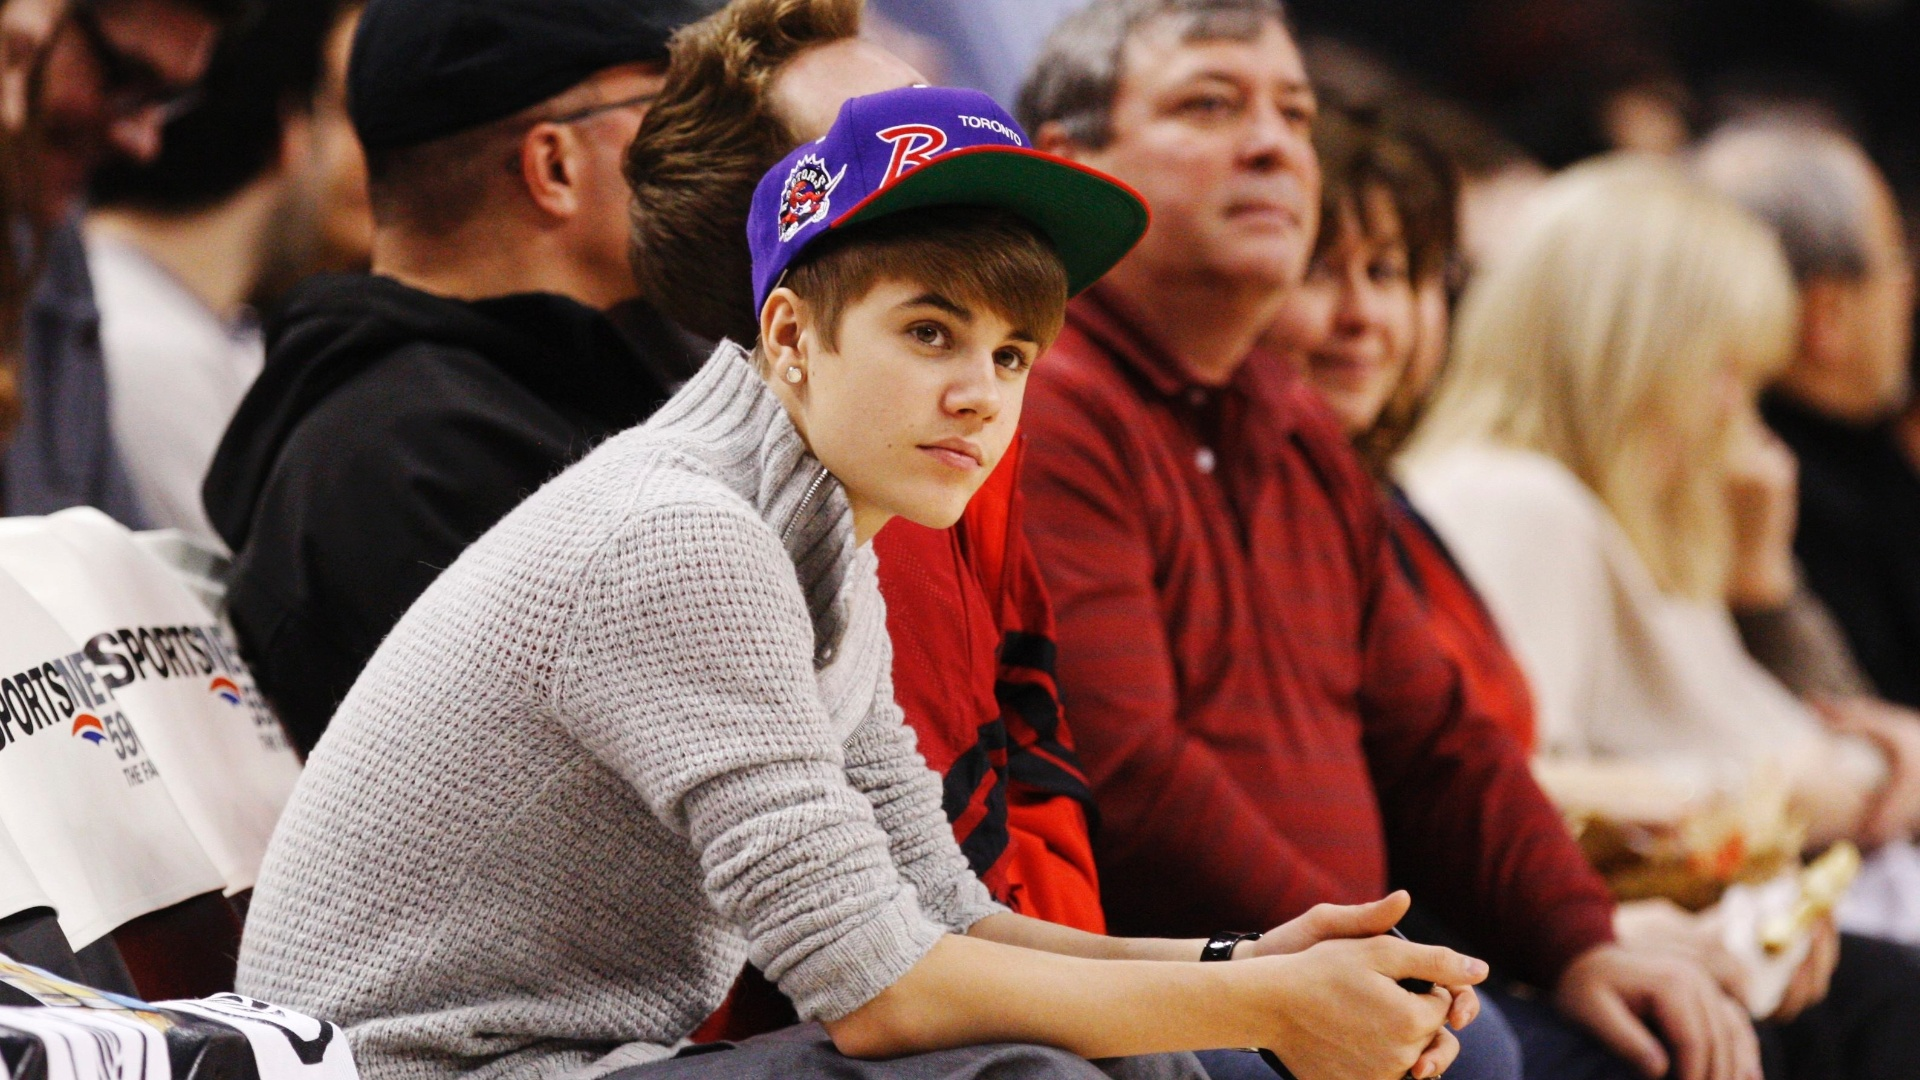 Astro Justin Bieber assiste ao jogo entre Toronto Raptors e Indiana Pacers pela NBA (28/12/2011)